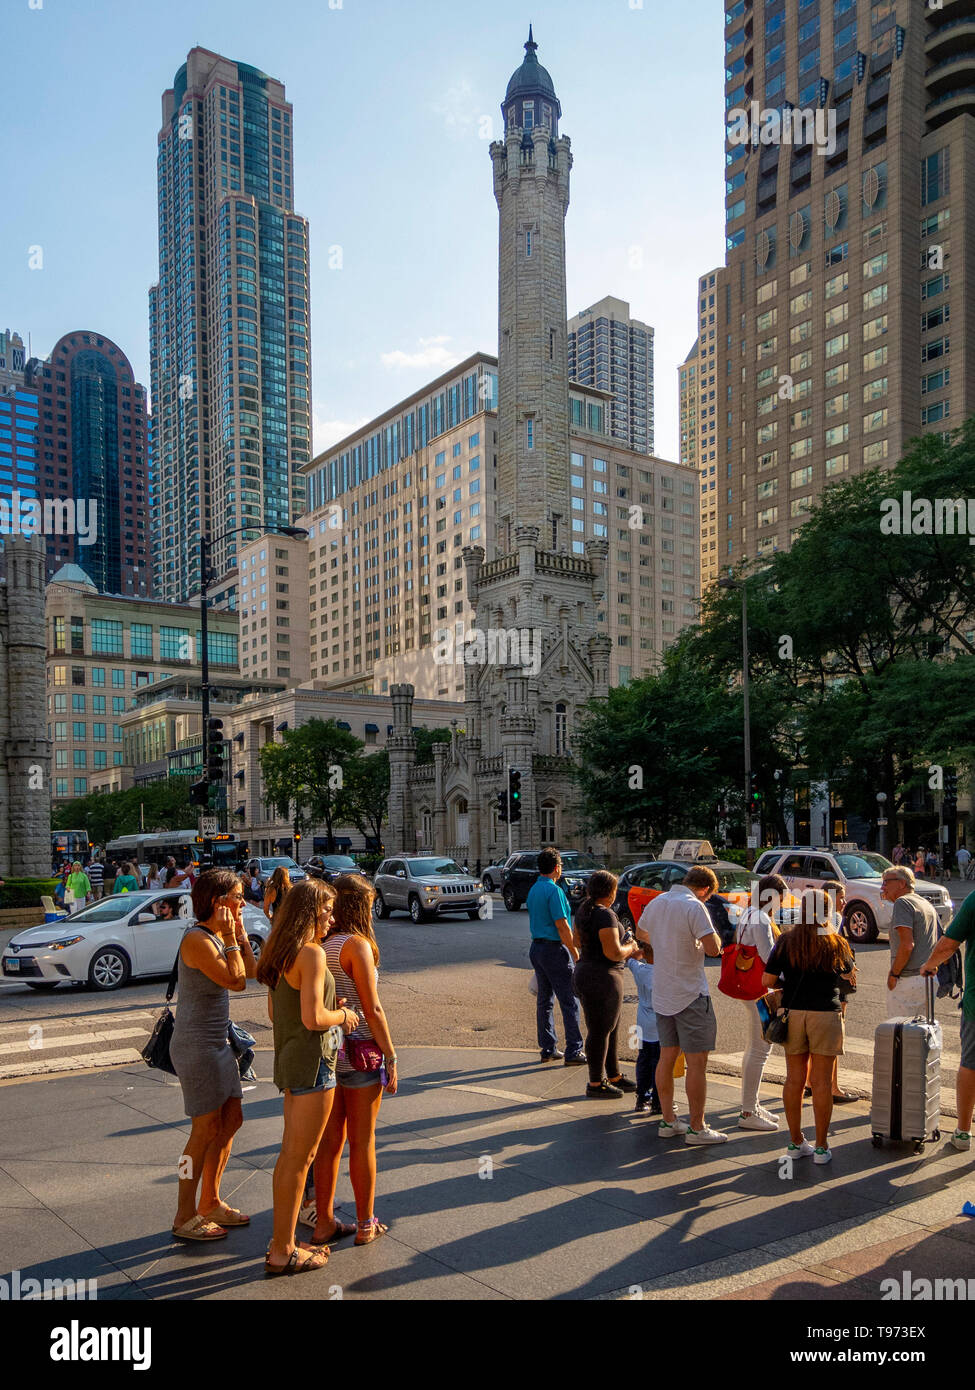 Afternoon sun shines on passersby beside the Chicago Water Tower at 806 North Michigan Avenue along the Magnificent Mile shopping district in the Near North Side community area of Chicago, IL. The tower was constructed to house a large water pump, intended to draw water from Lake Michigan. Built in 1869, it is the second-oldest water tower in the United States. - Stock Image